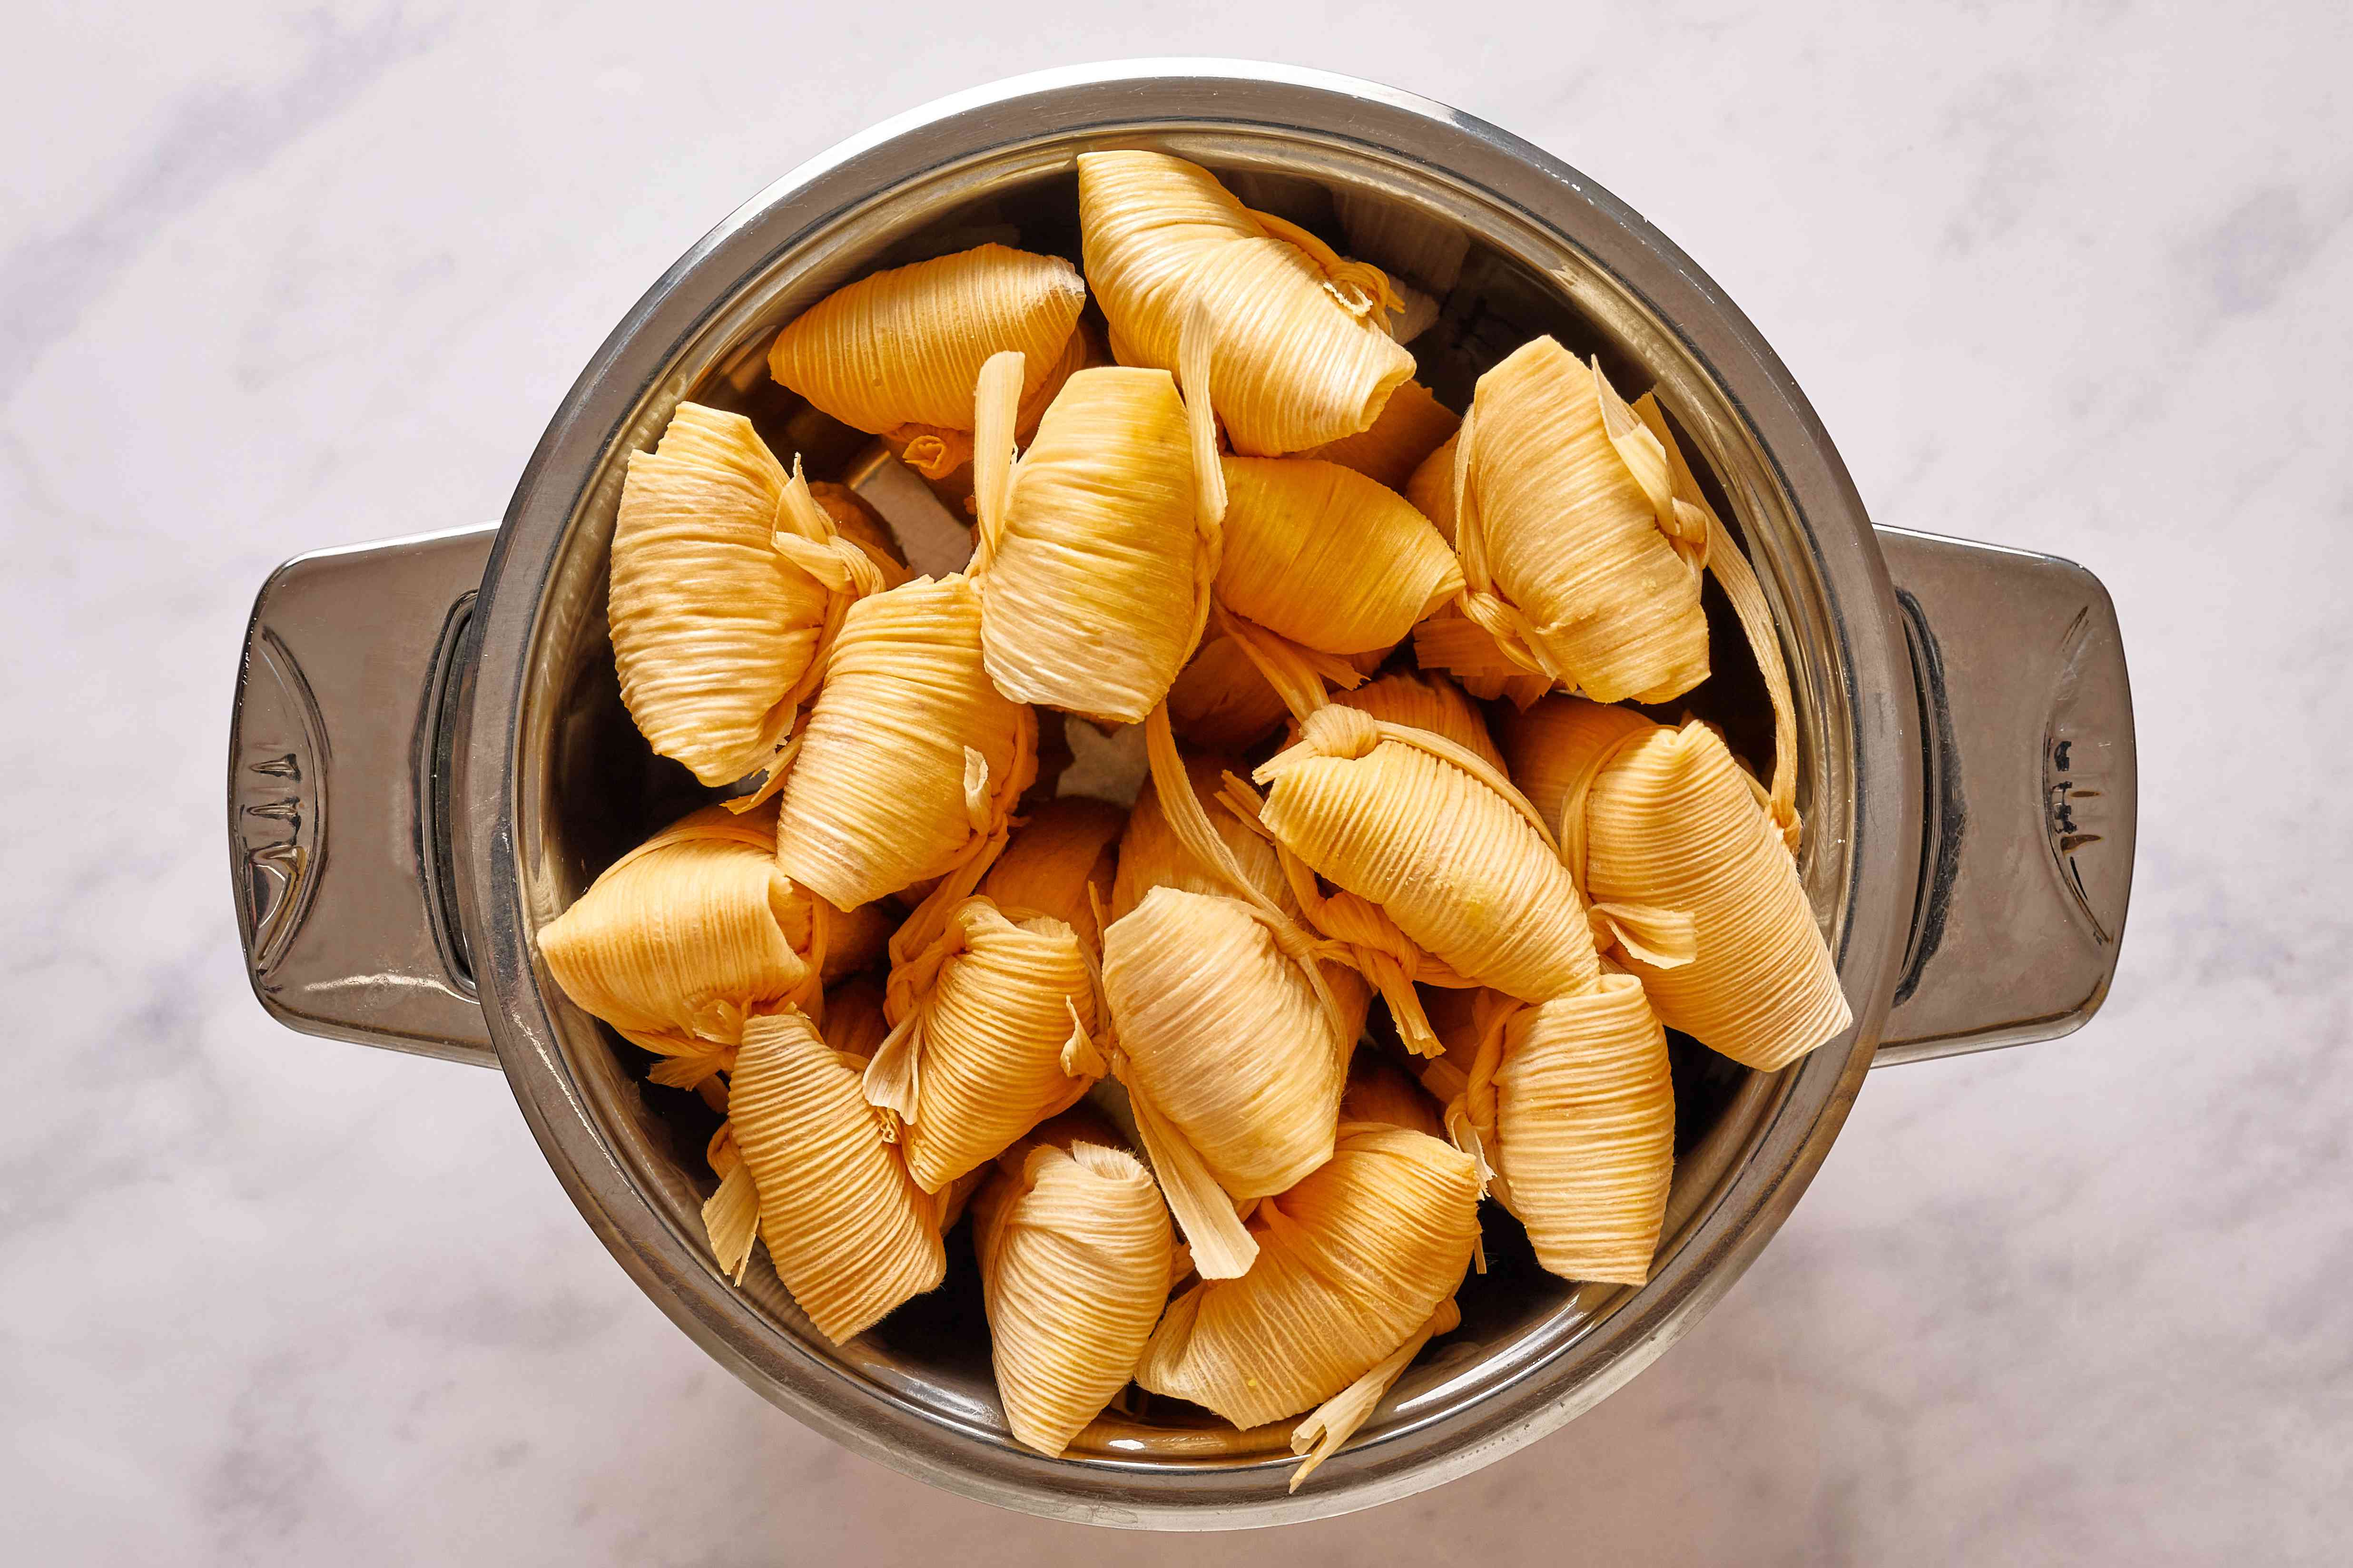 Set tamales upright in a steamer